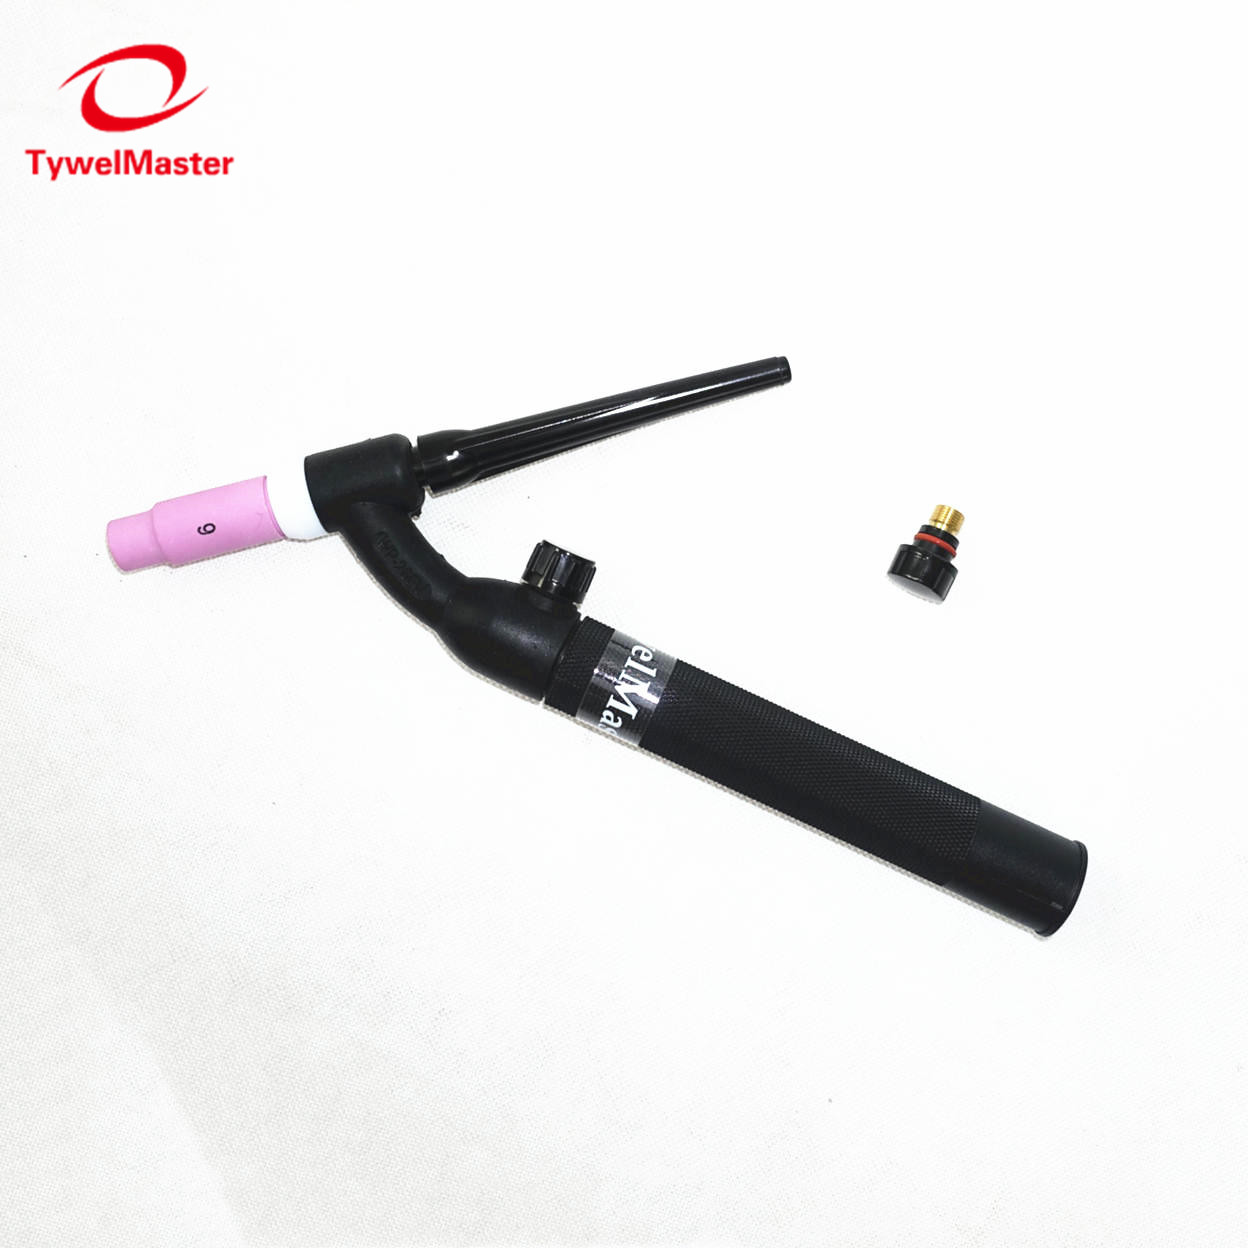 WP26-FV TIG Torch GTAW Gas Tungsten Arc Welding Torch WP26 Argon Air Cooled WP-26 Flexible Neck Gas Valve TIG Welding Torch